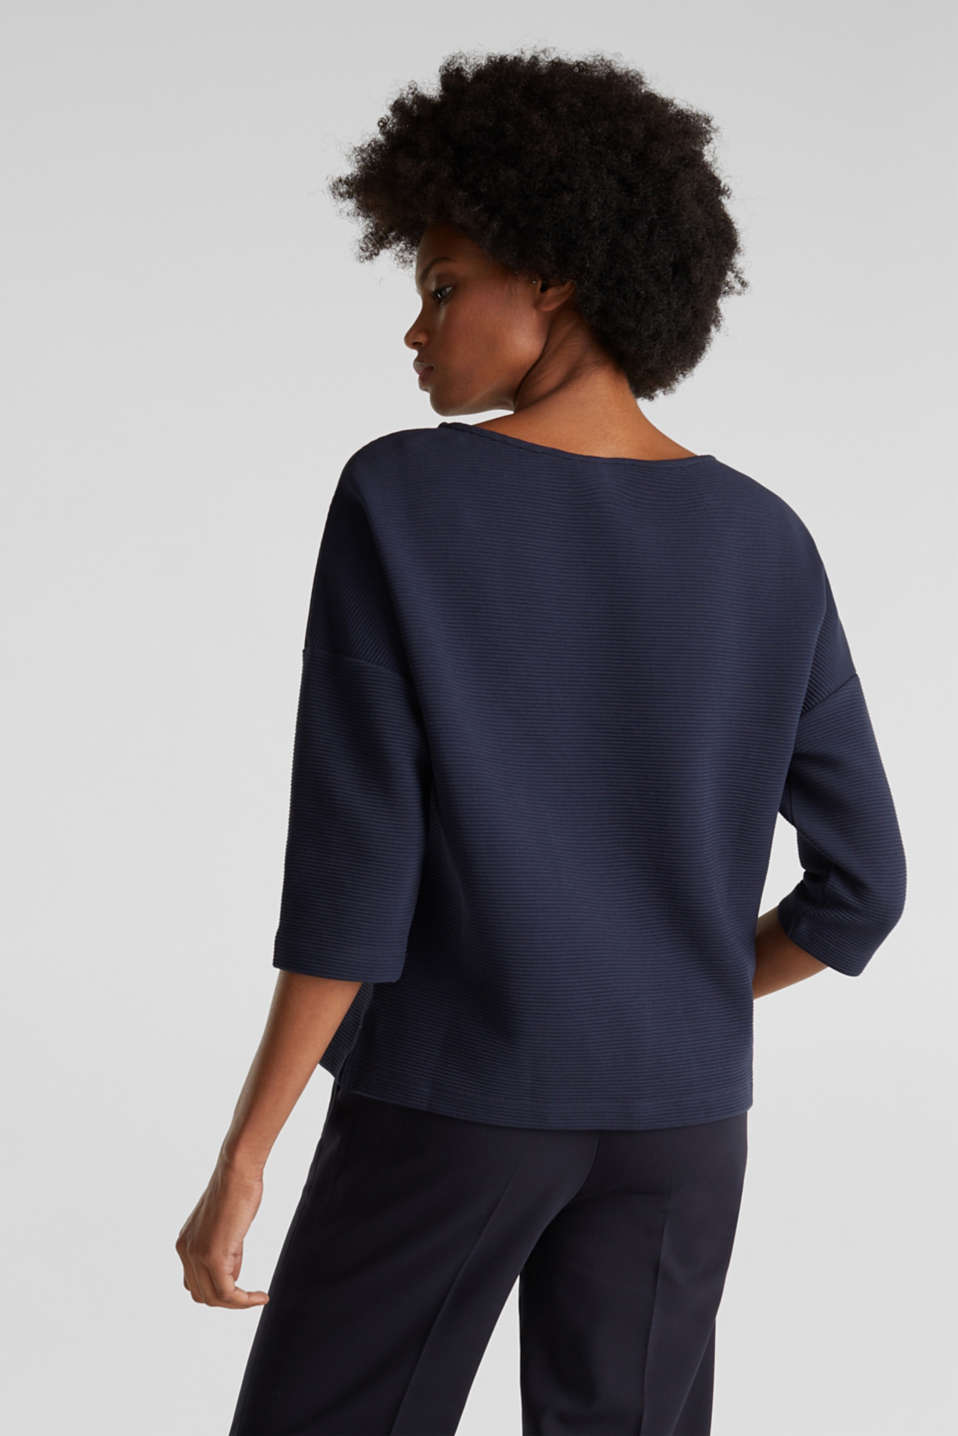 Boxy sweatshirt with a ribbed texture, NAVY, detail image number 2